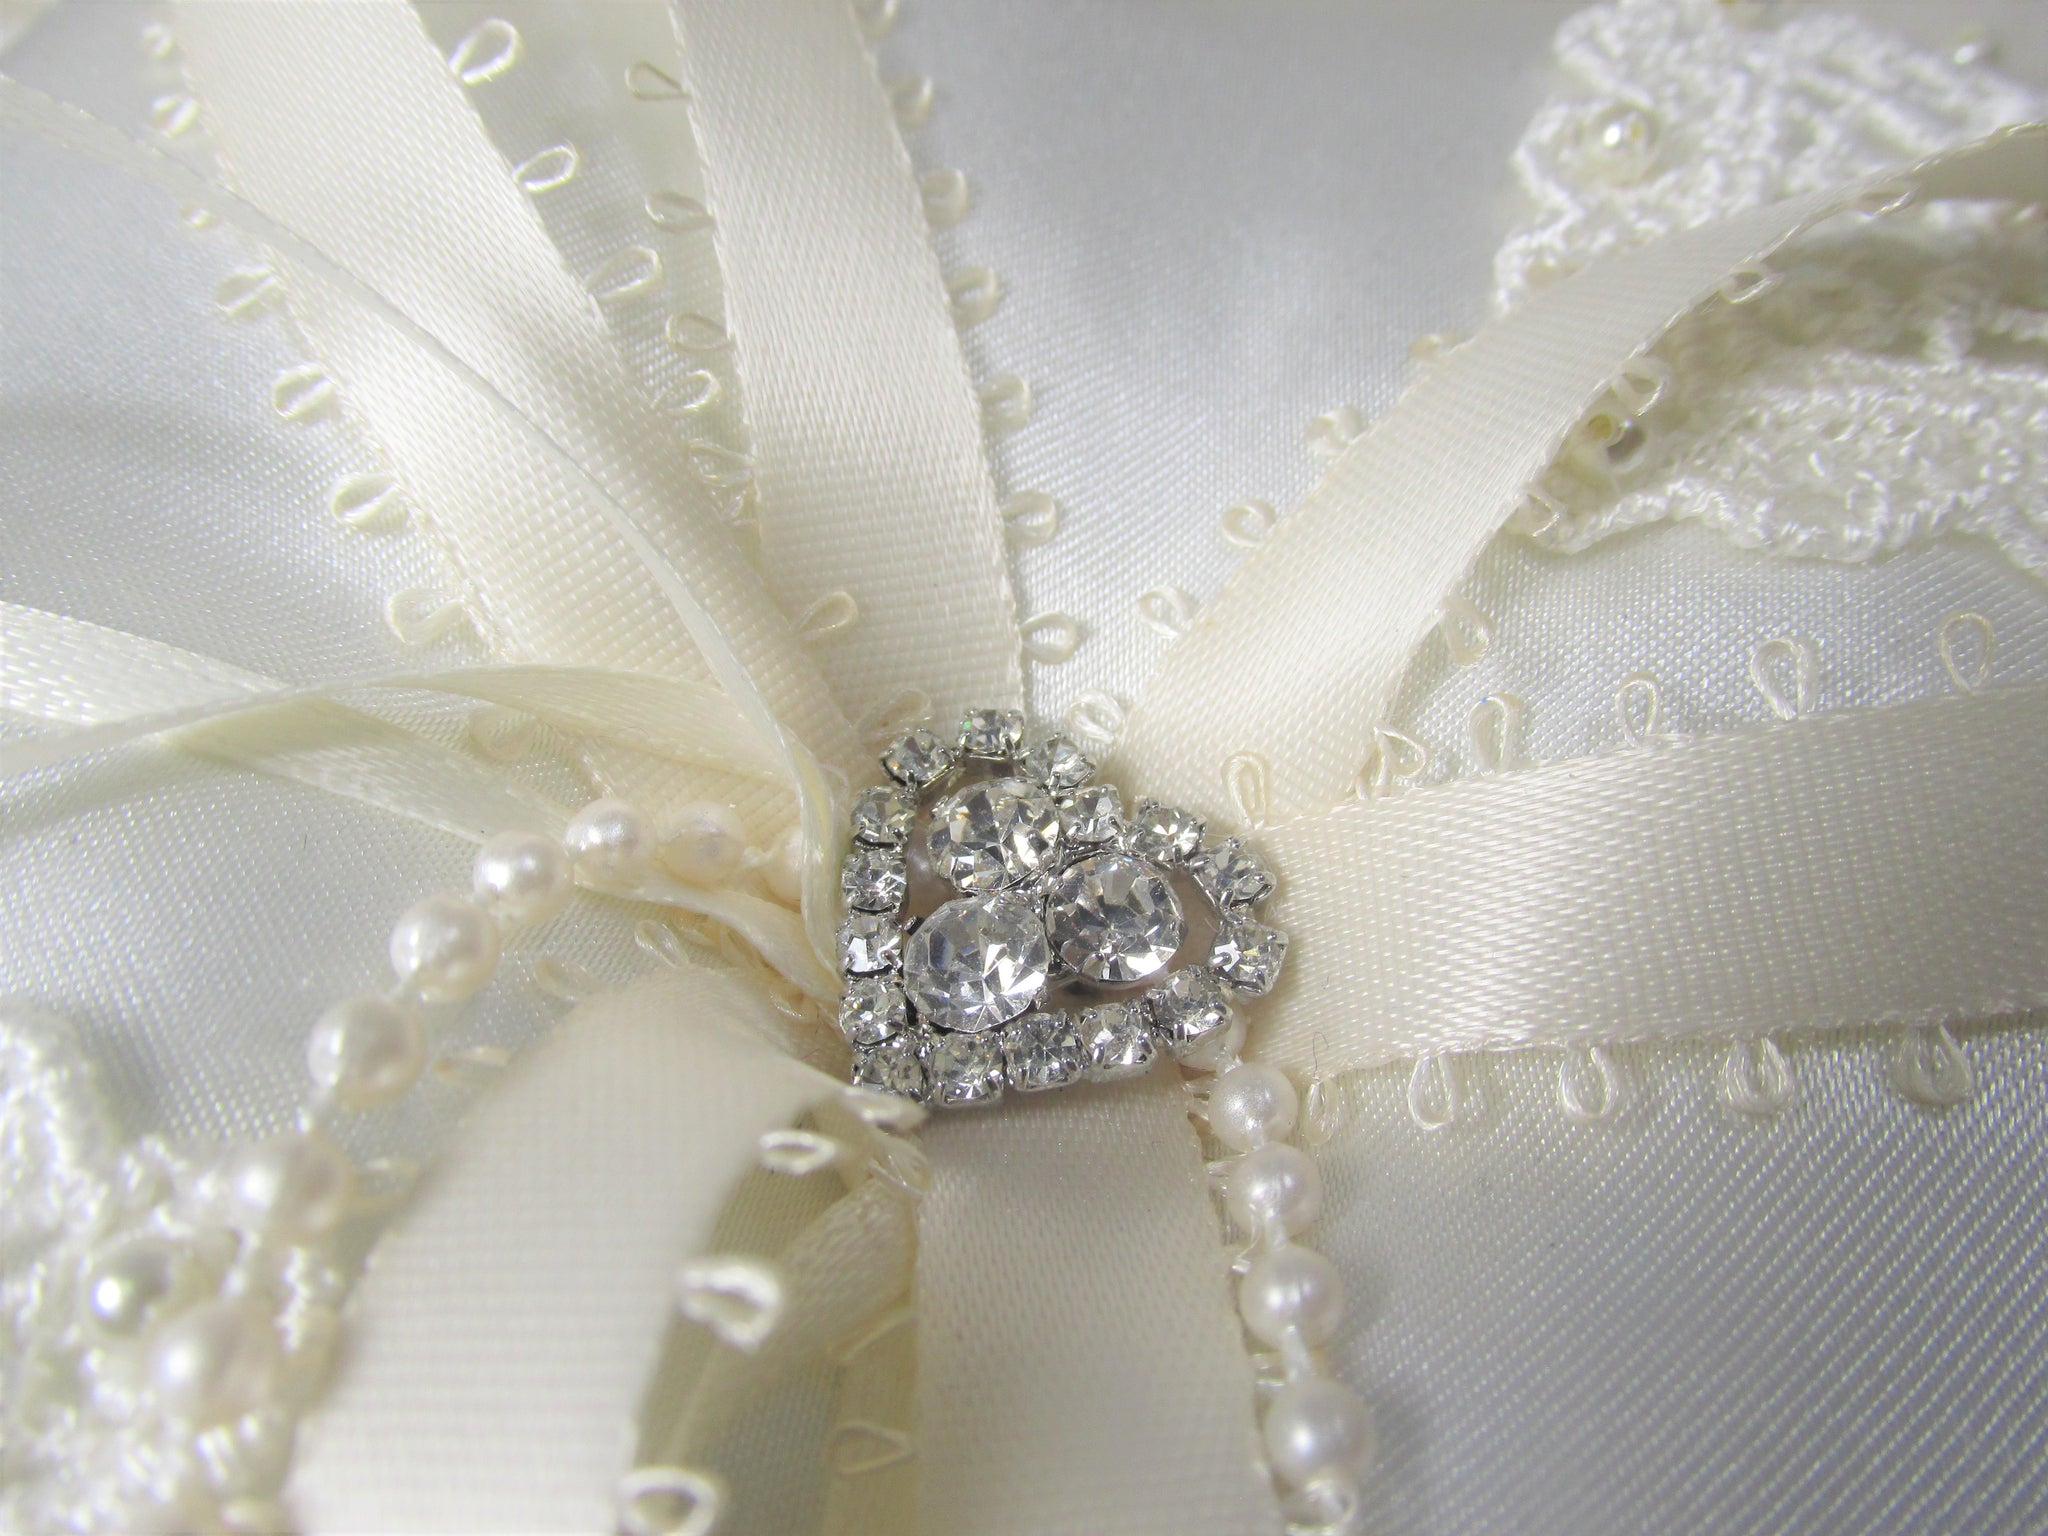 Small Ivory Satin Ring Bearer Pillow with Lace Hearts, Crystals and Pearls - Odyssey Creations